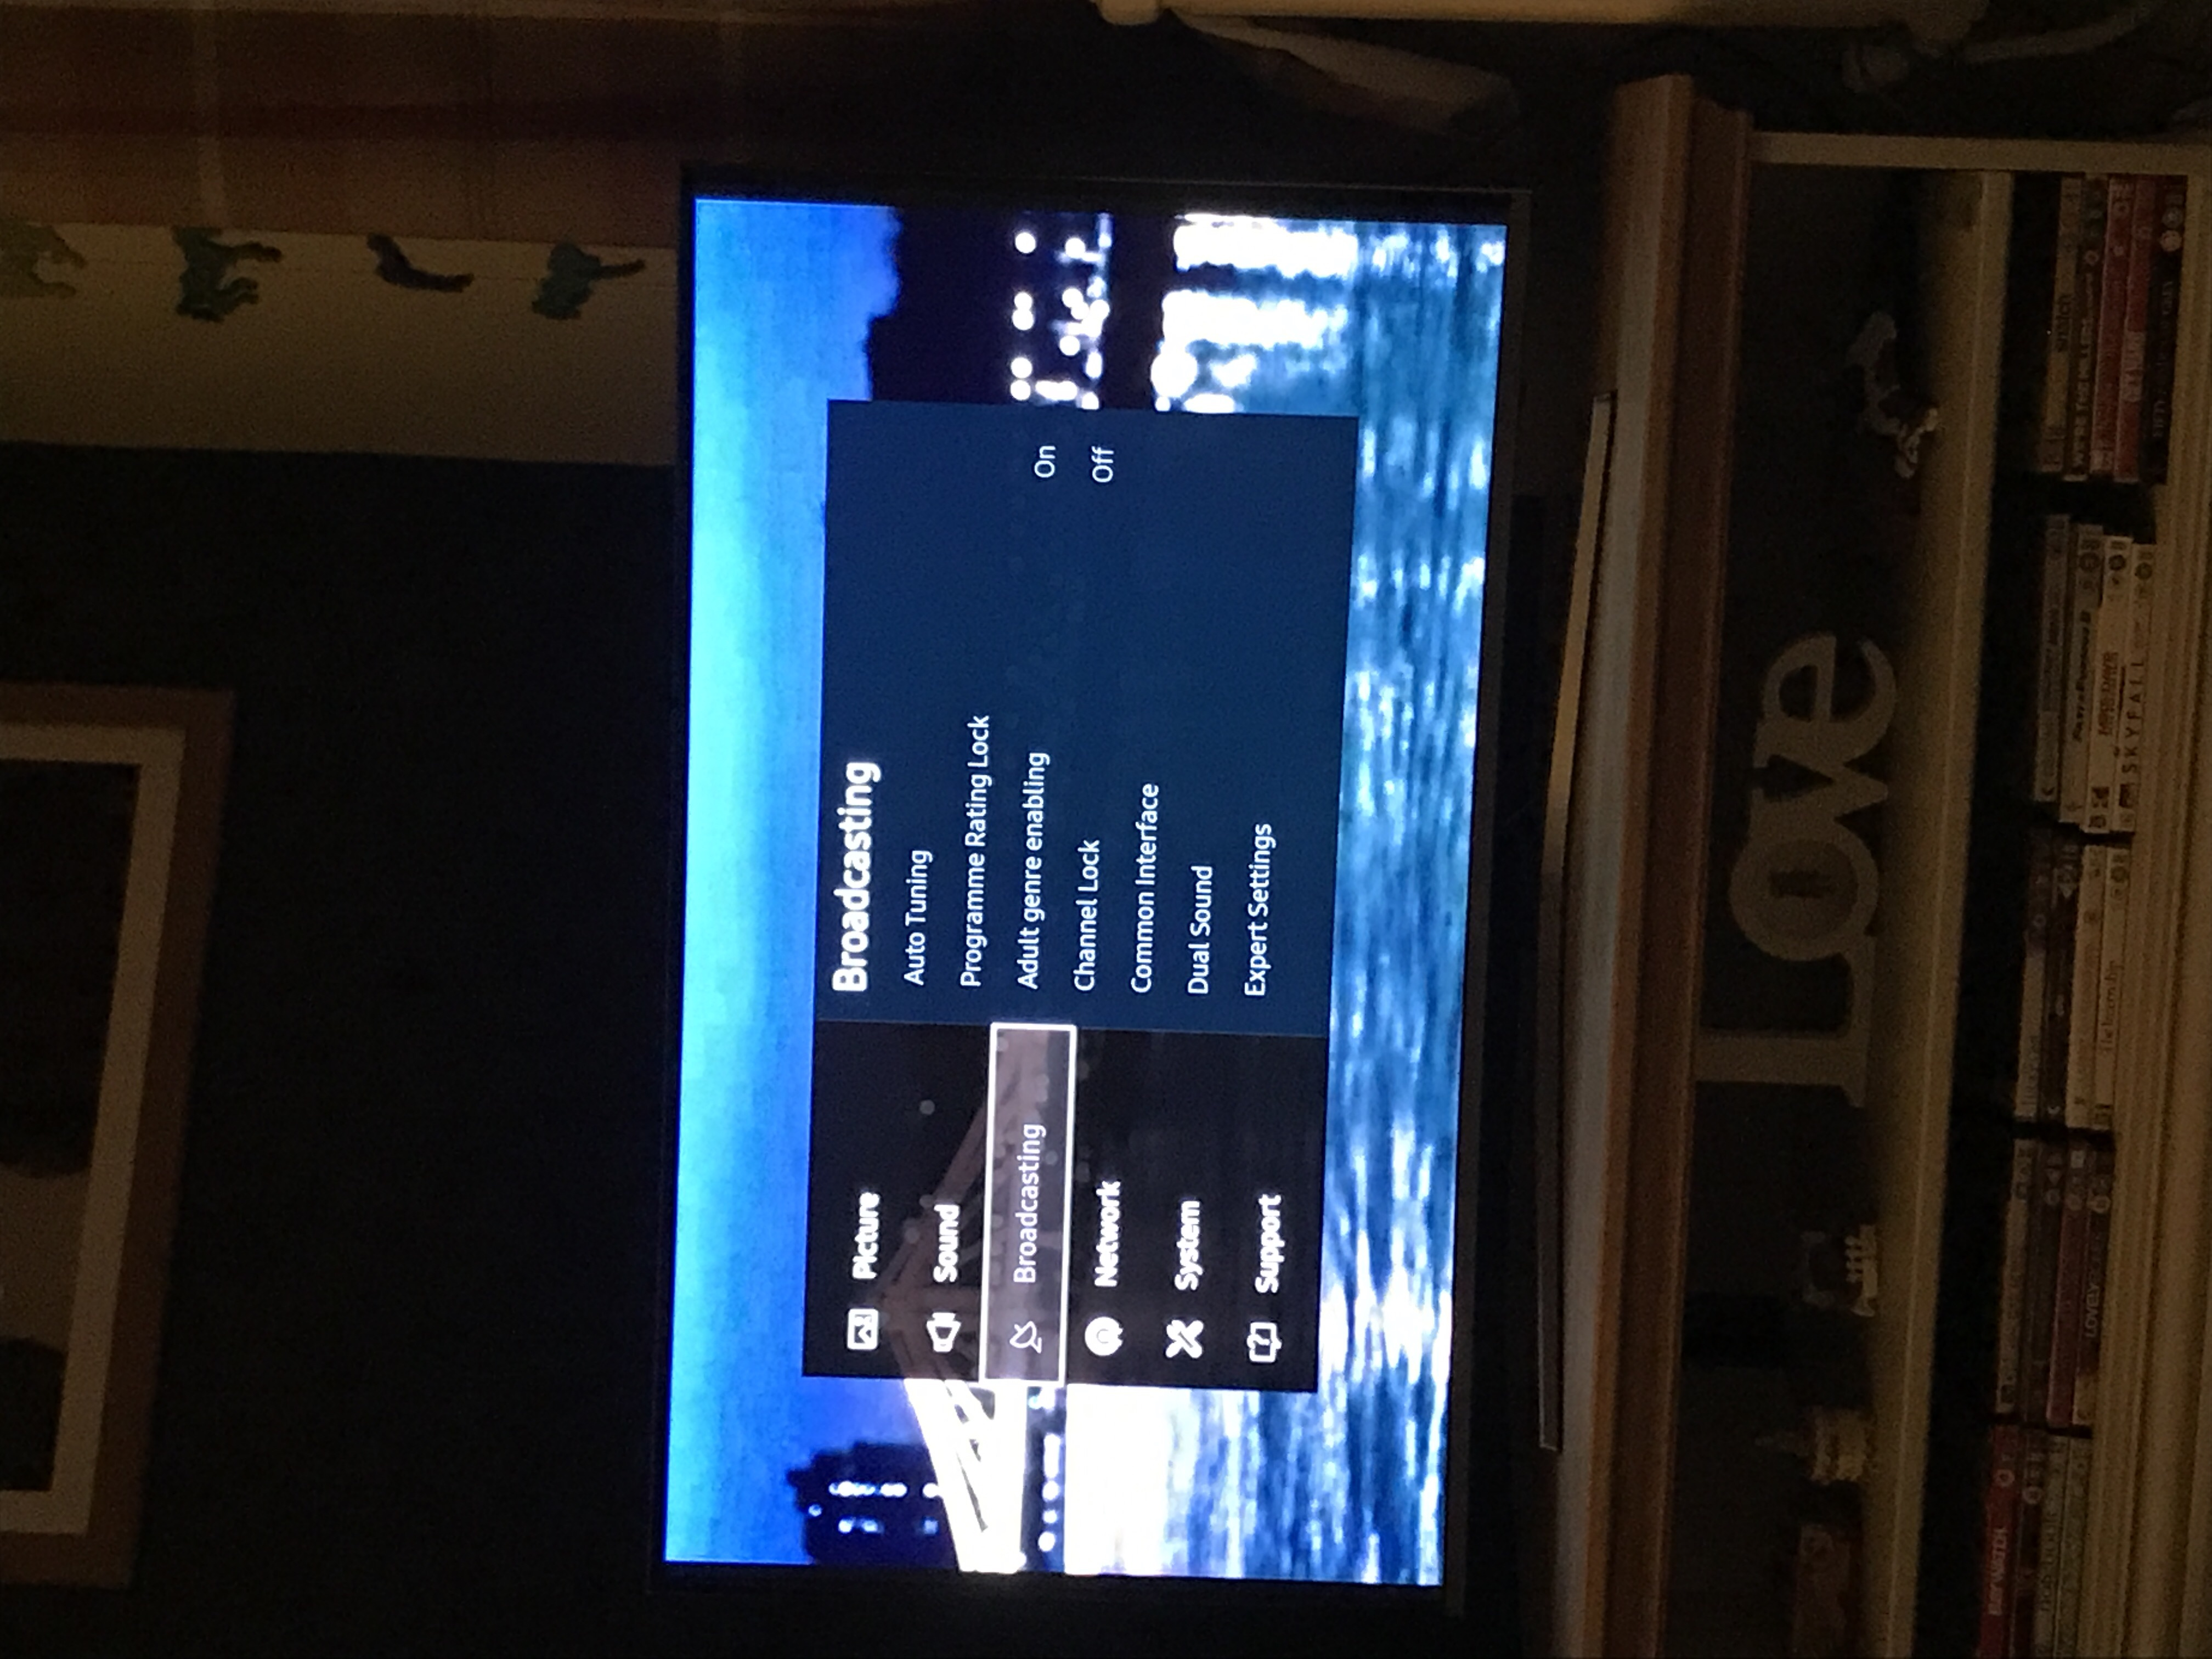 Smart TV - Freeview / channels not working with aerial - Samsung